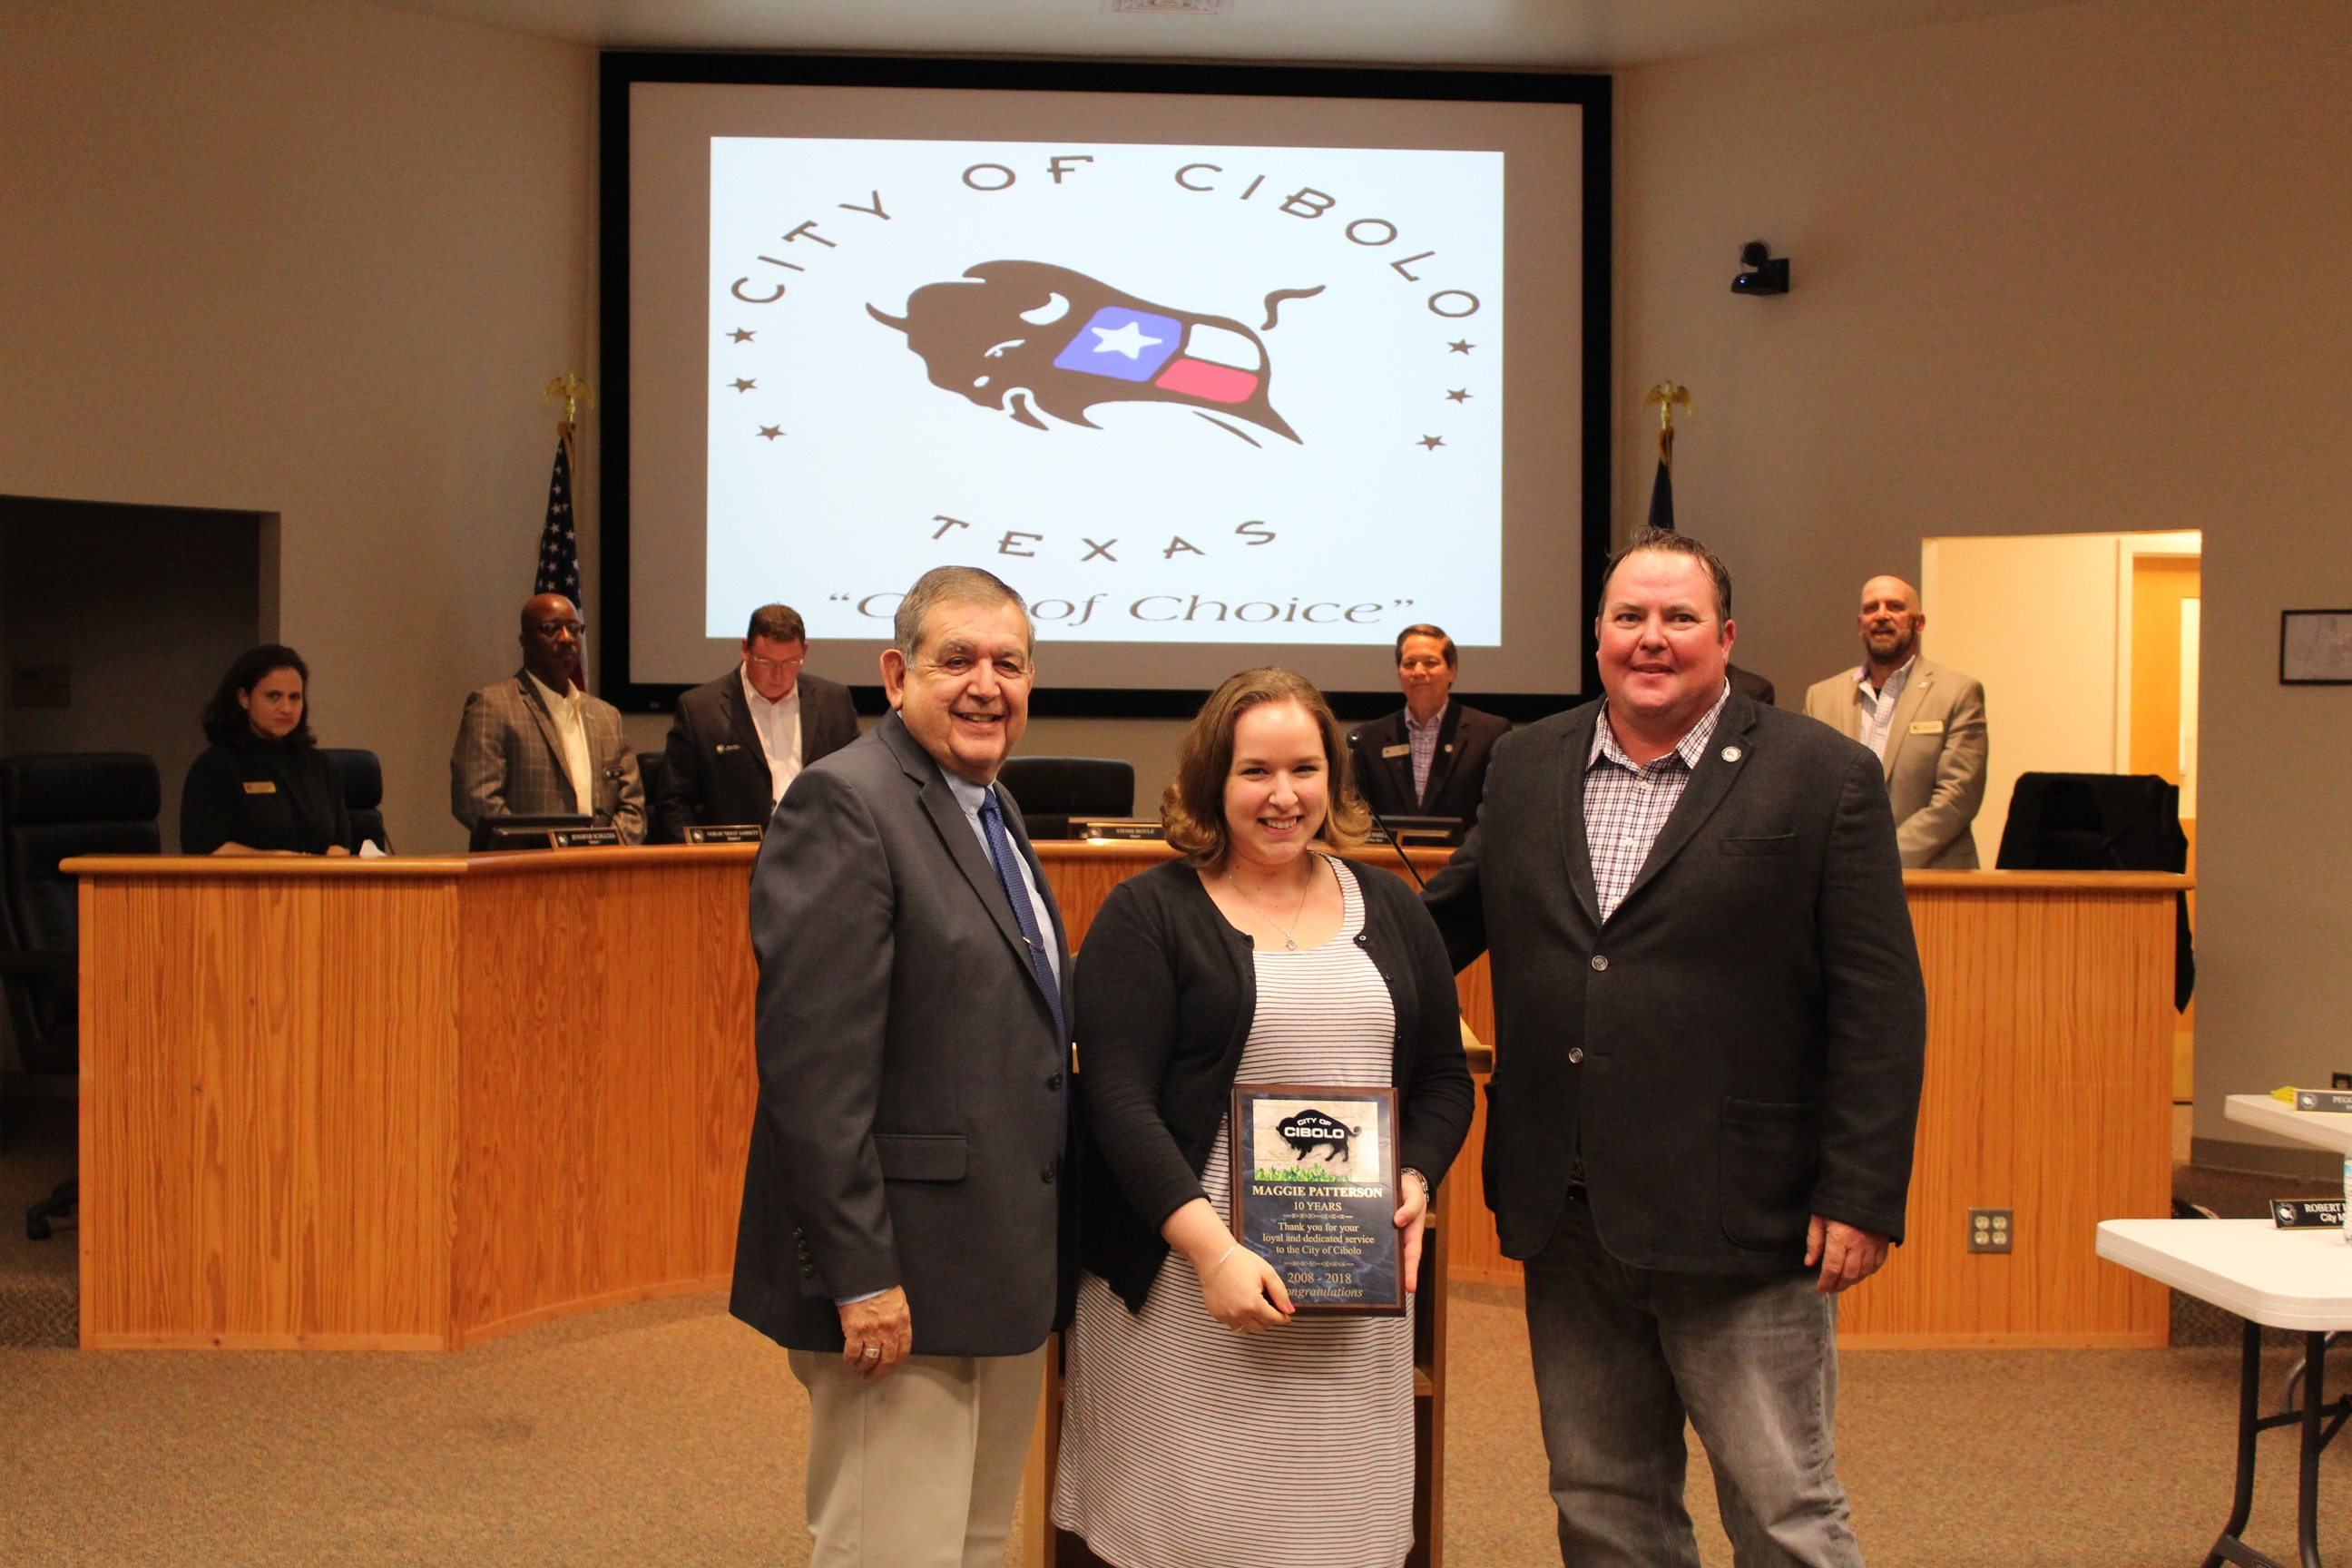 Mr. Herrera Presentation of 10 Years Service Award to Maggie Patterson. (Picture with Mayor Boyle.)